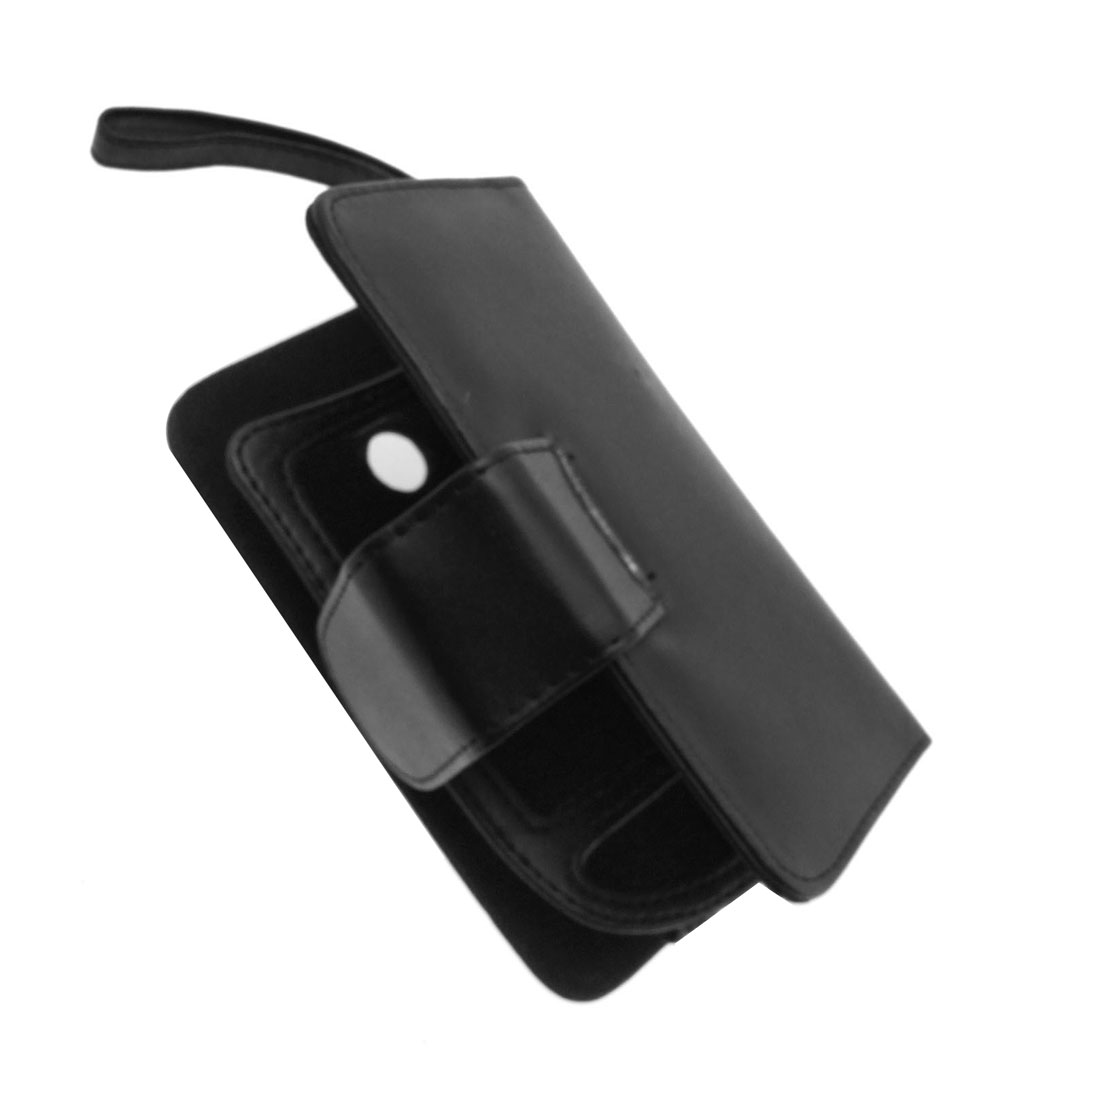 Genuine Leather Case Holder for Dopod 696 & Credit Card - Black